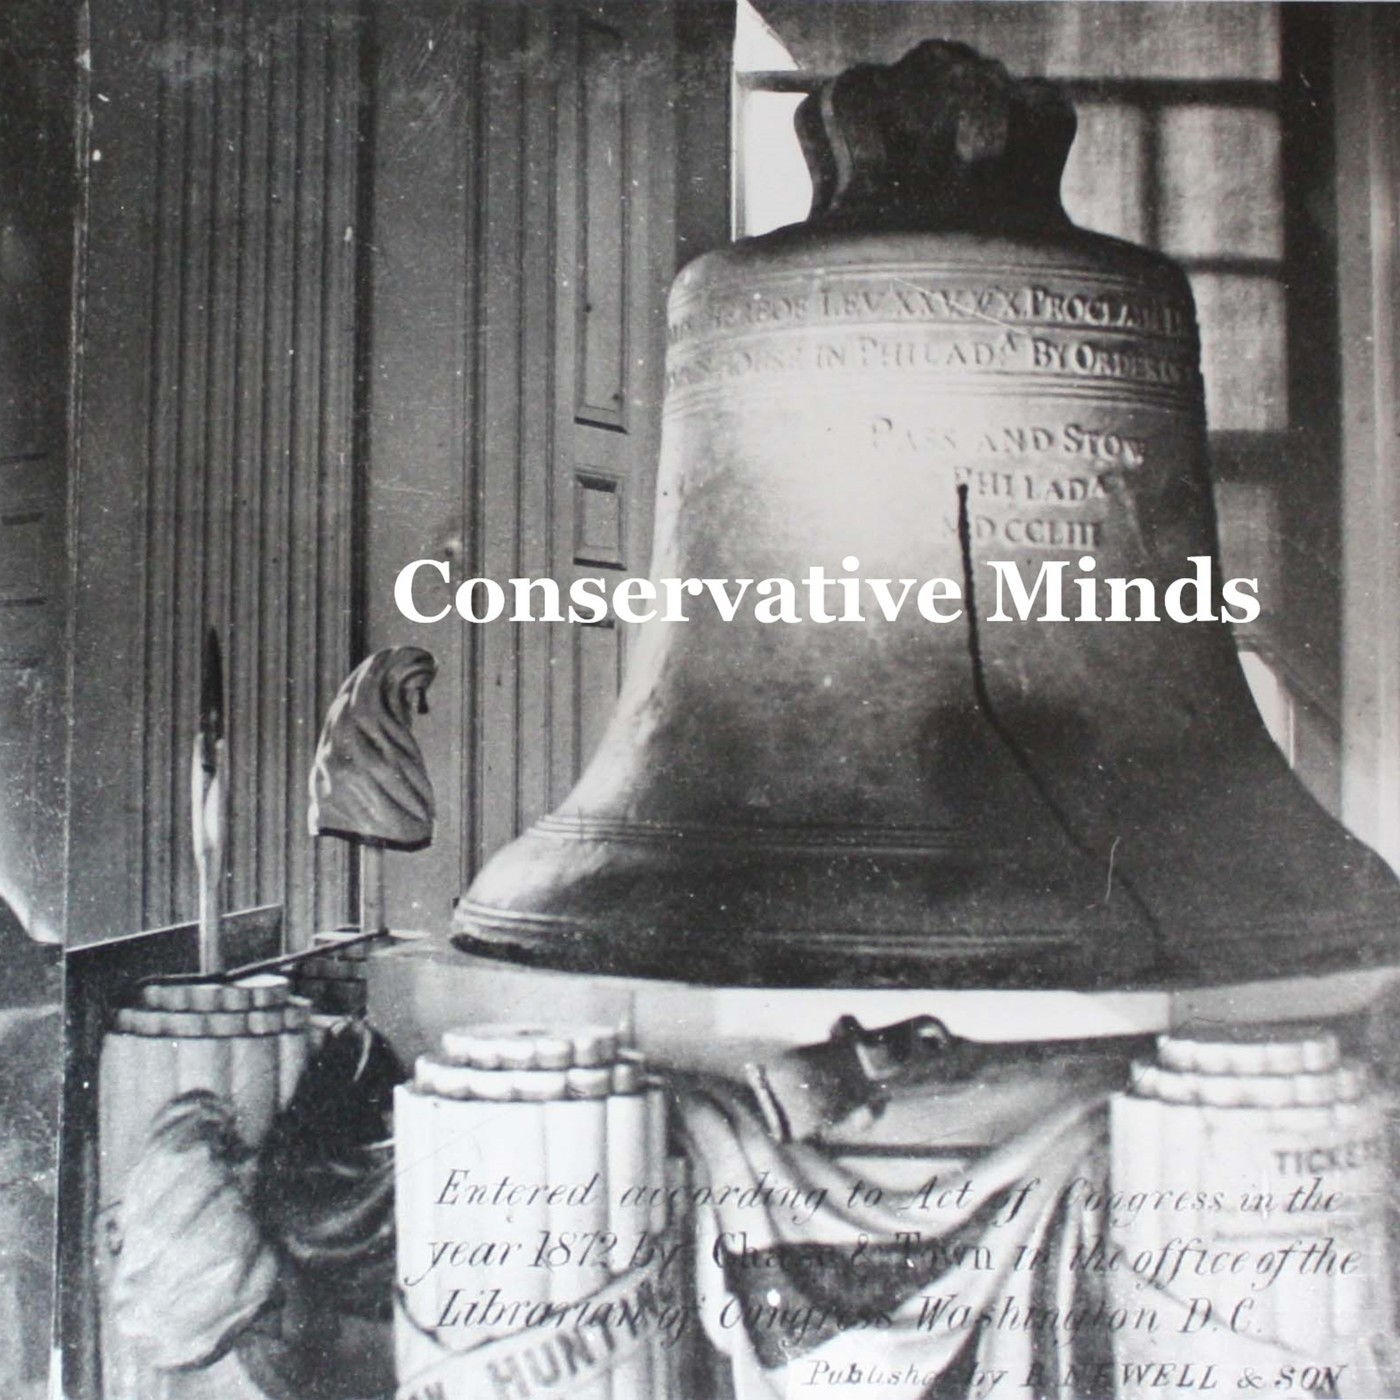 Conservative Minds 2: Conscience of a Conservative Part II